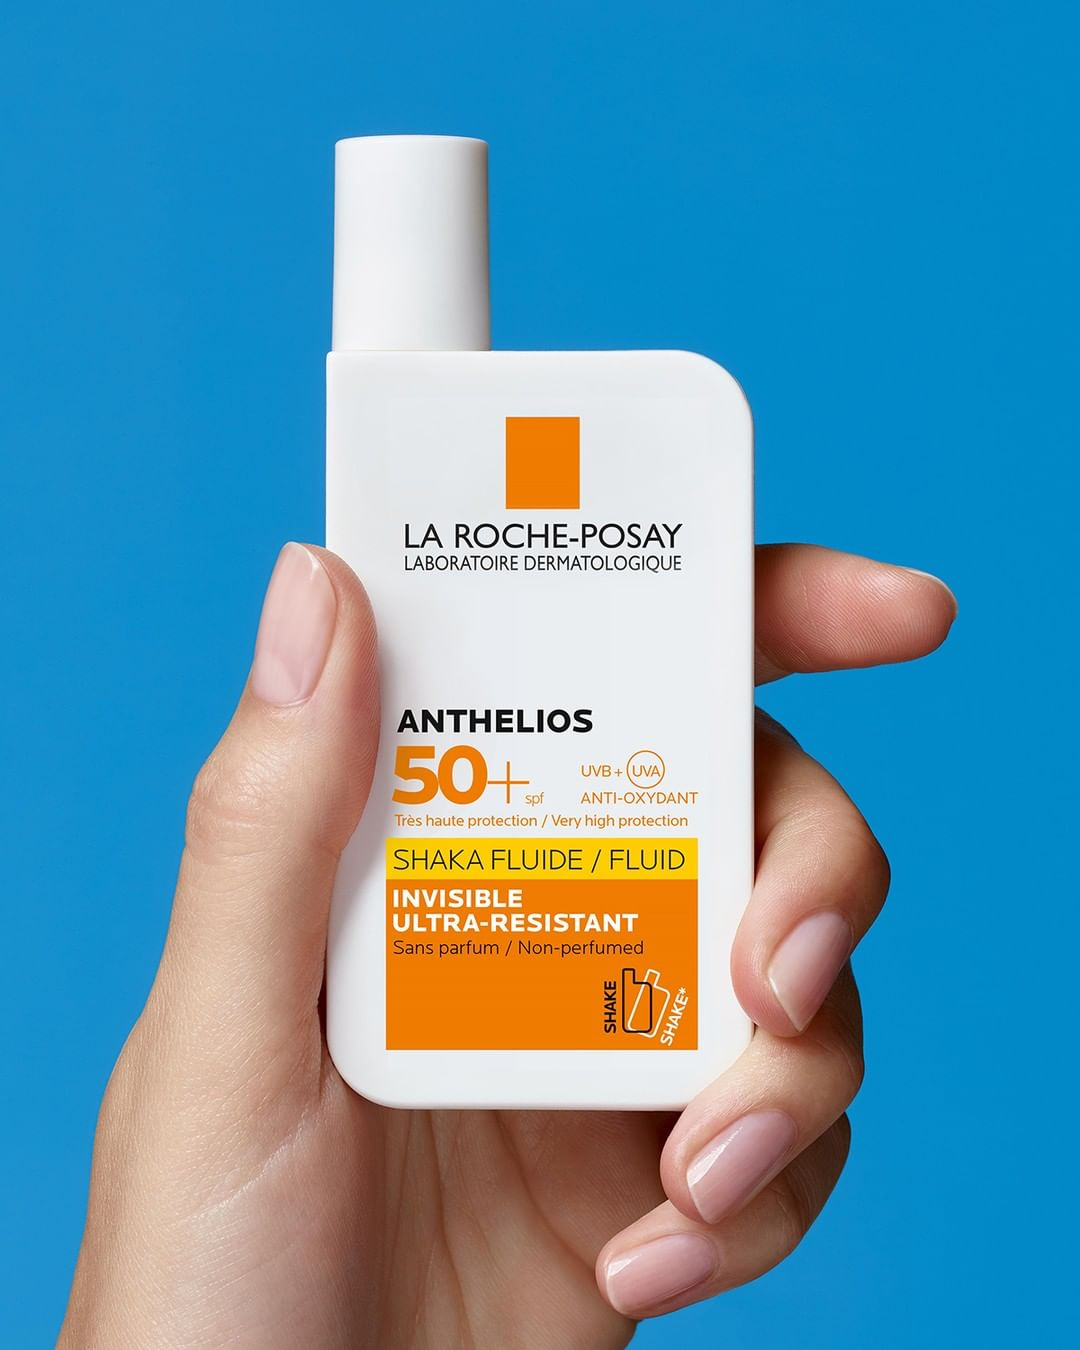 Review Kem chống nắng dạng sữa lỏng nhẹ của pháp La Roche-Posay Anthelios Invisible Fluid SPF 50+